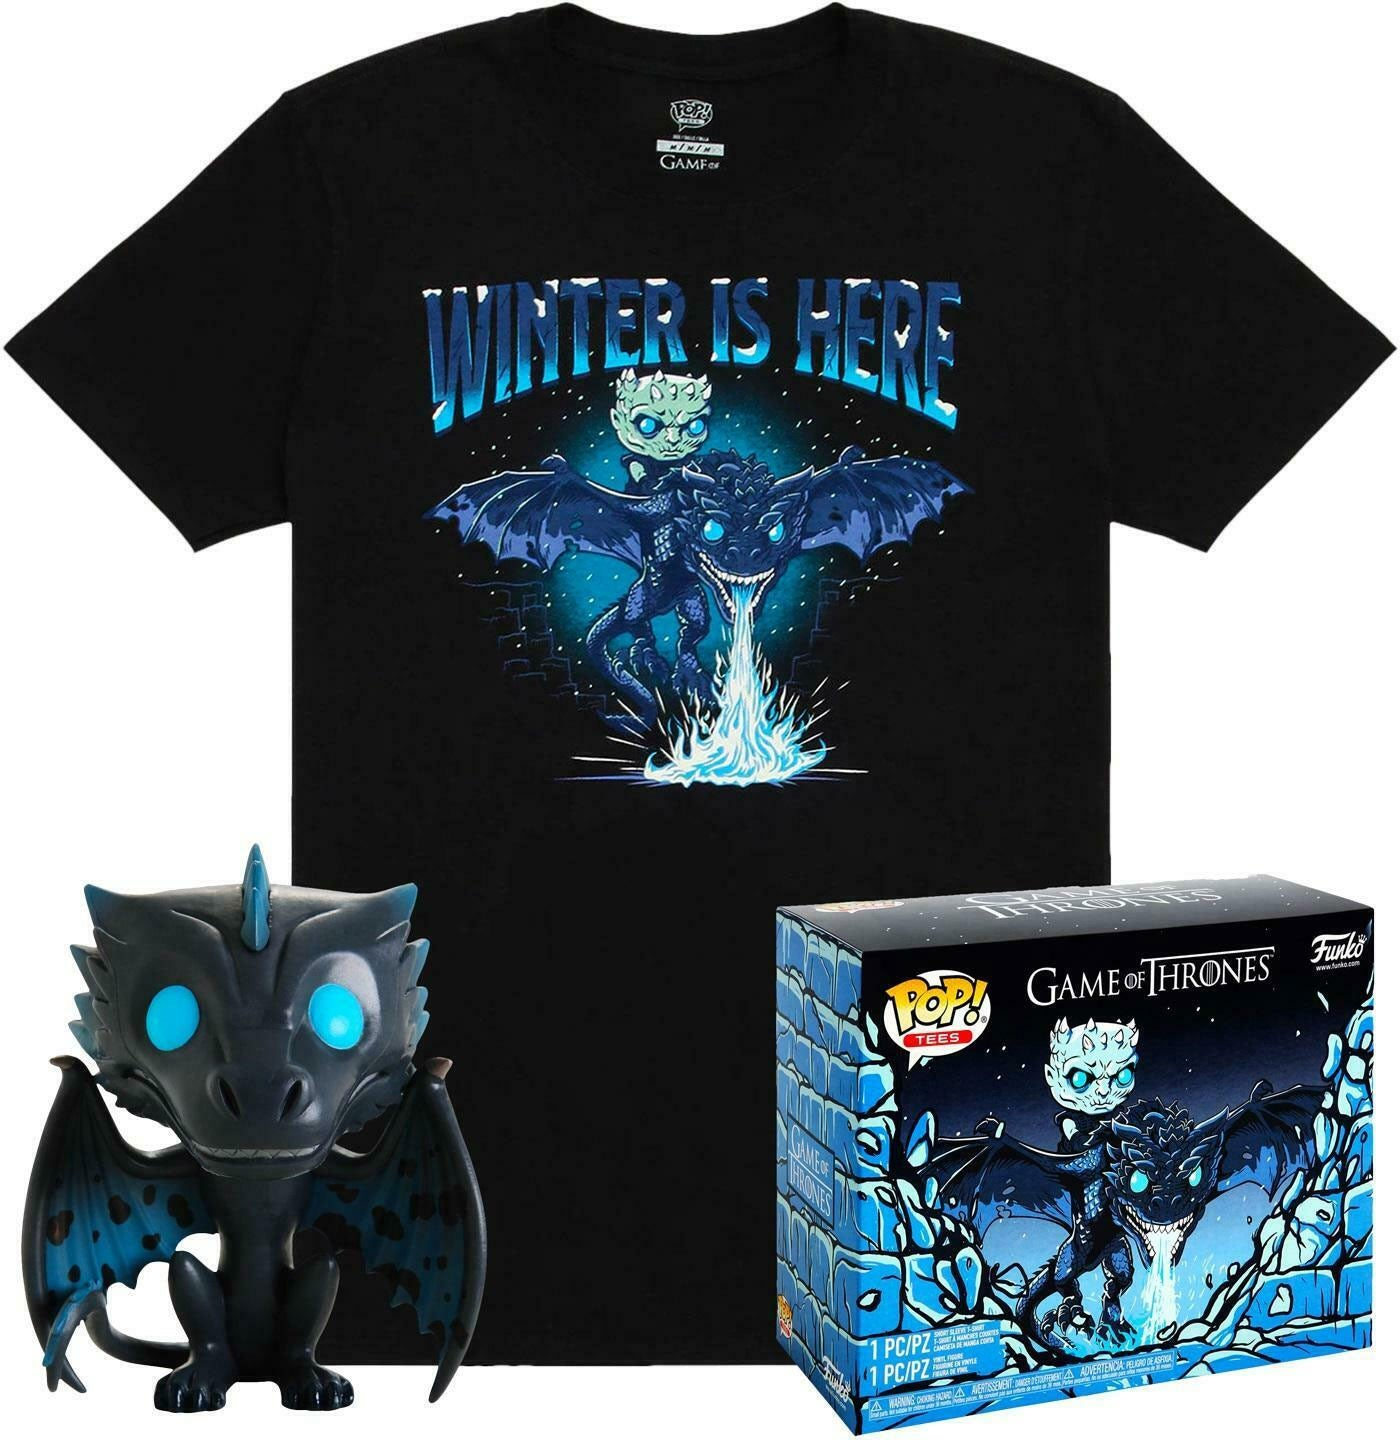 Coffret-T-Shirt-et-figurine-dragon-Game-of-Thrones-POP.jpg